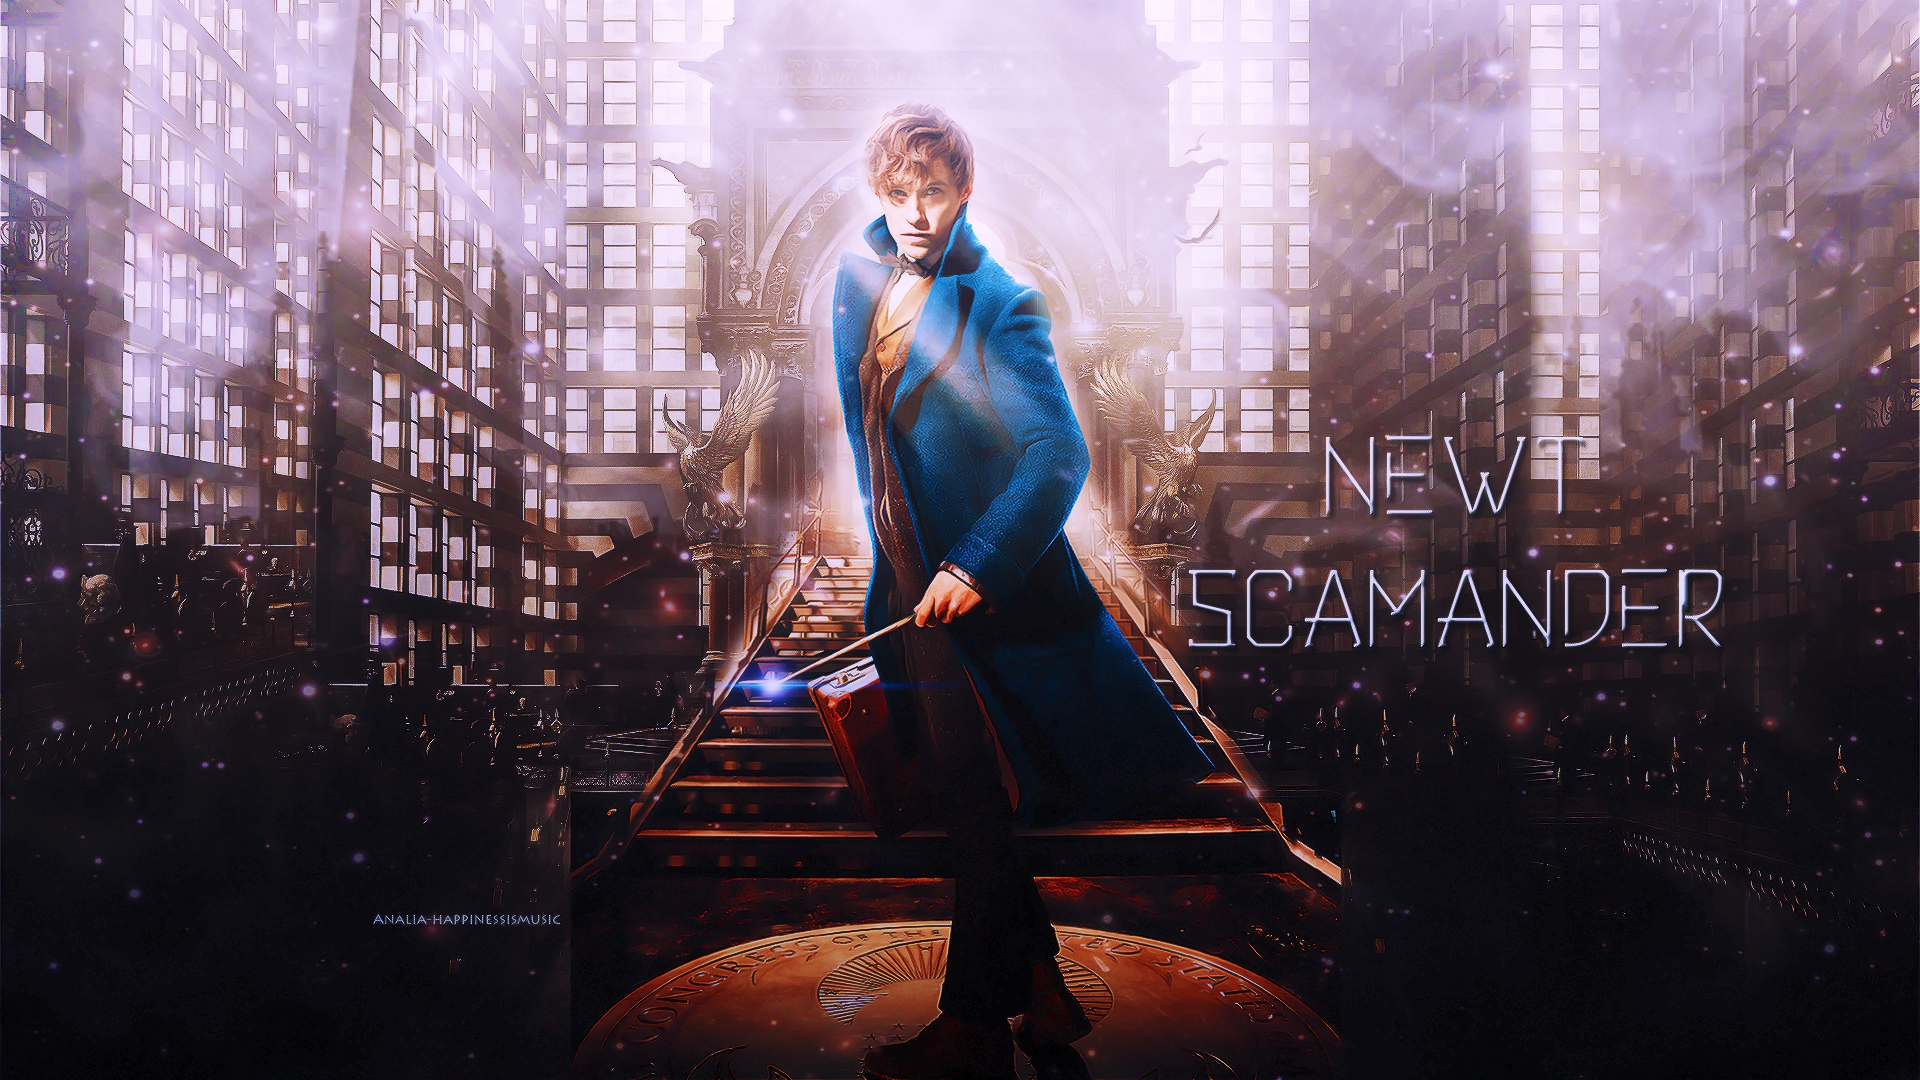 Newt Scamander in Fantastic Beasts Wallpaper   Wallpaper Stream 1920x1080